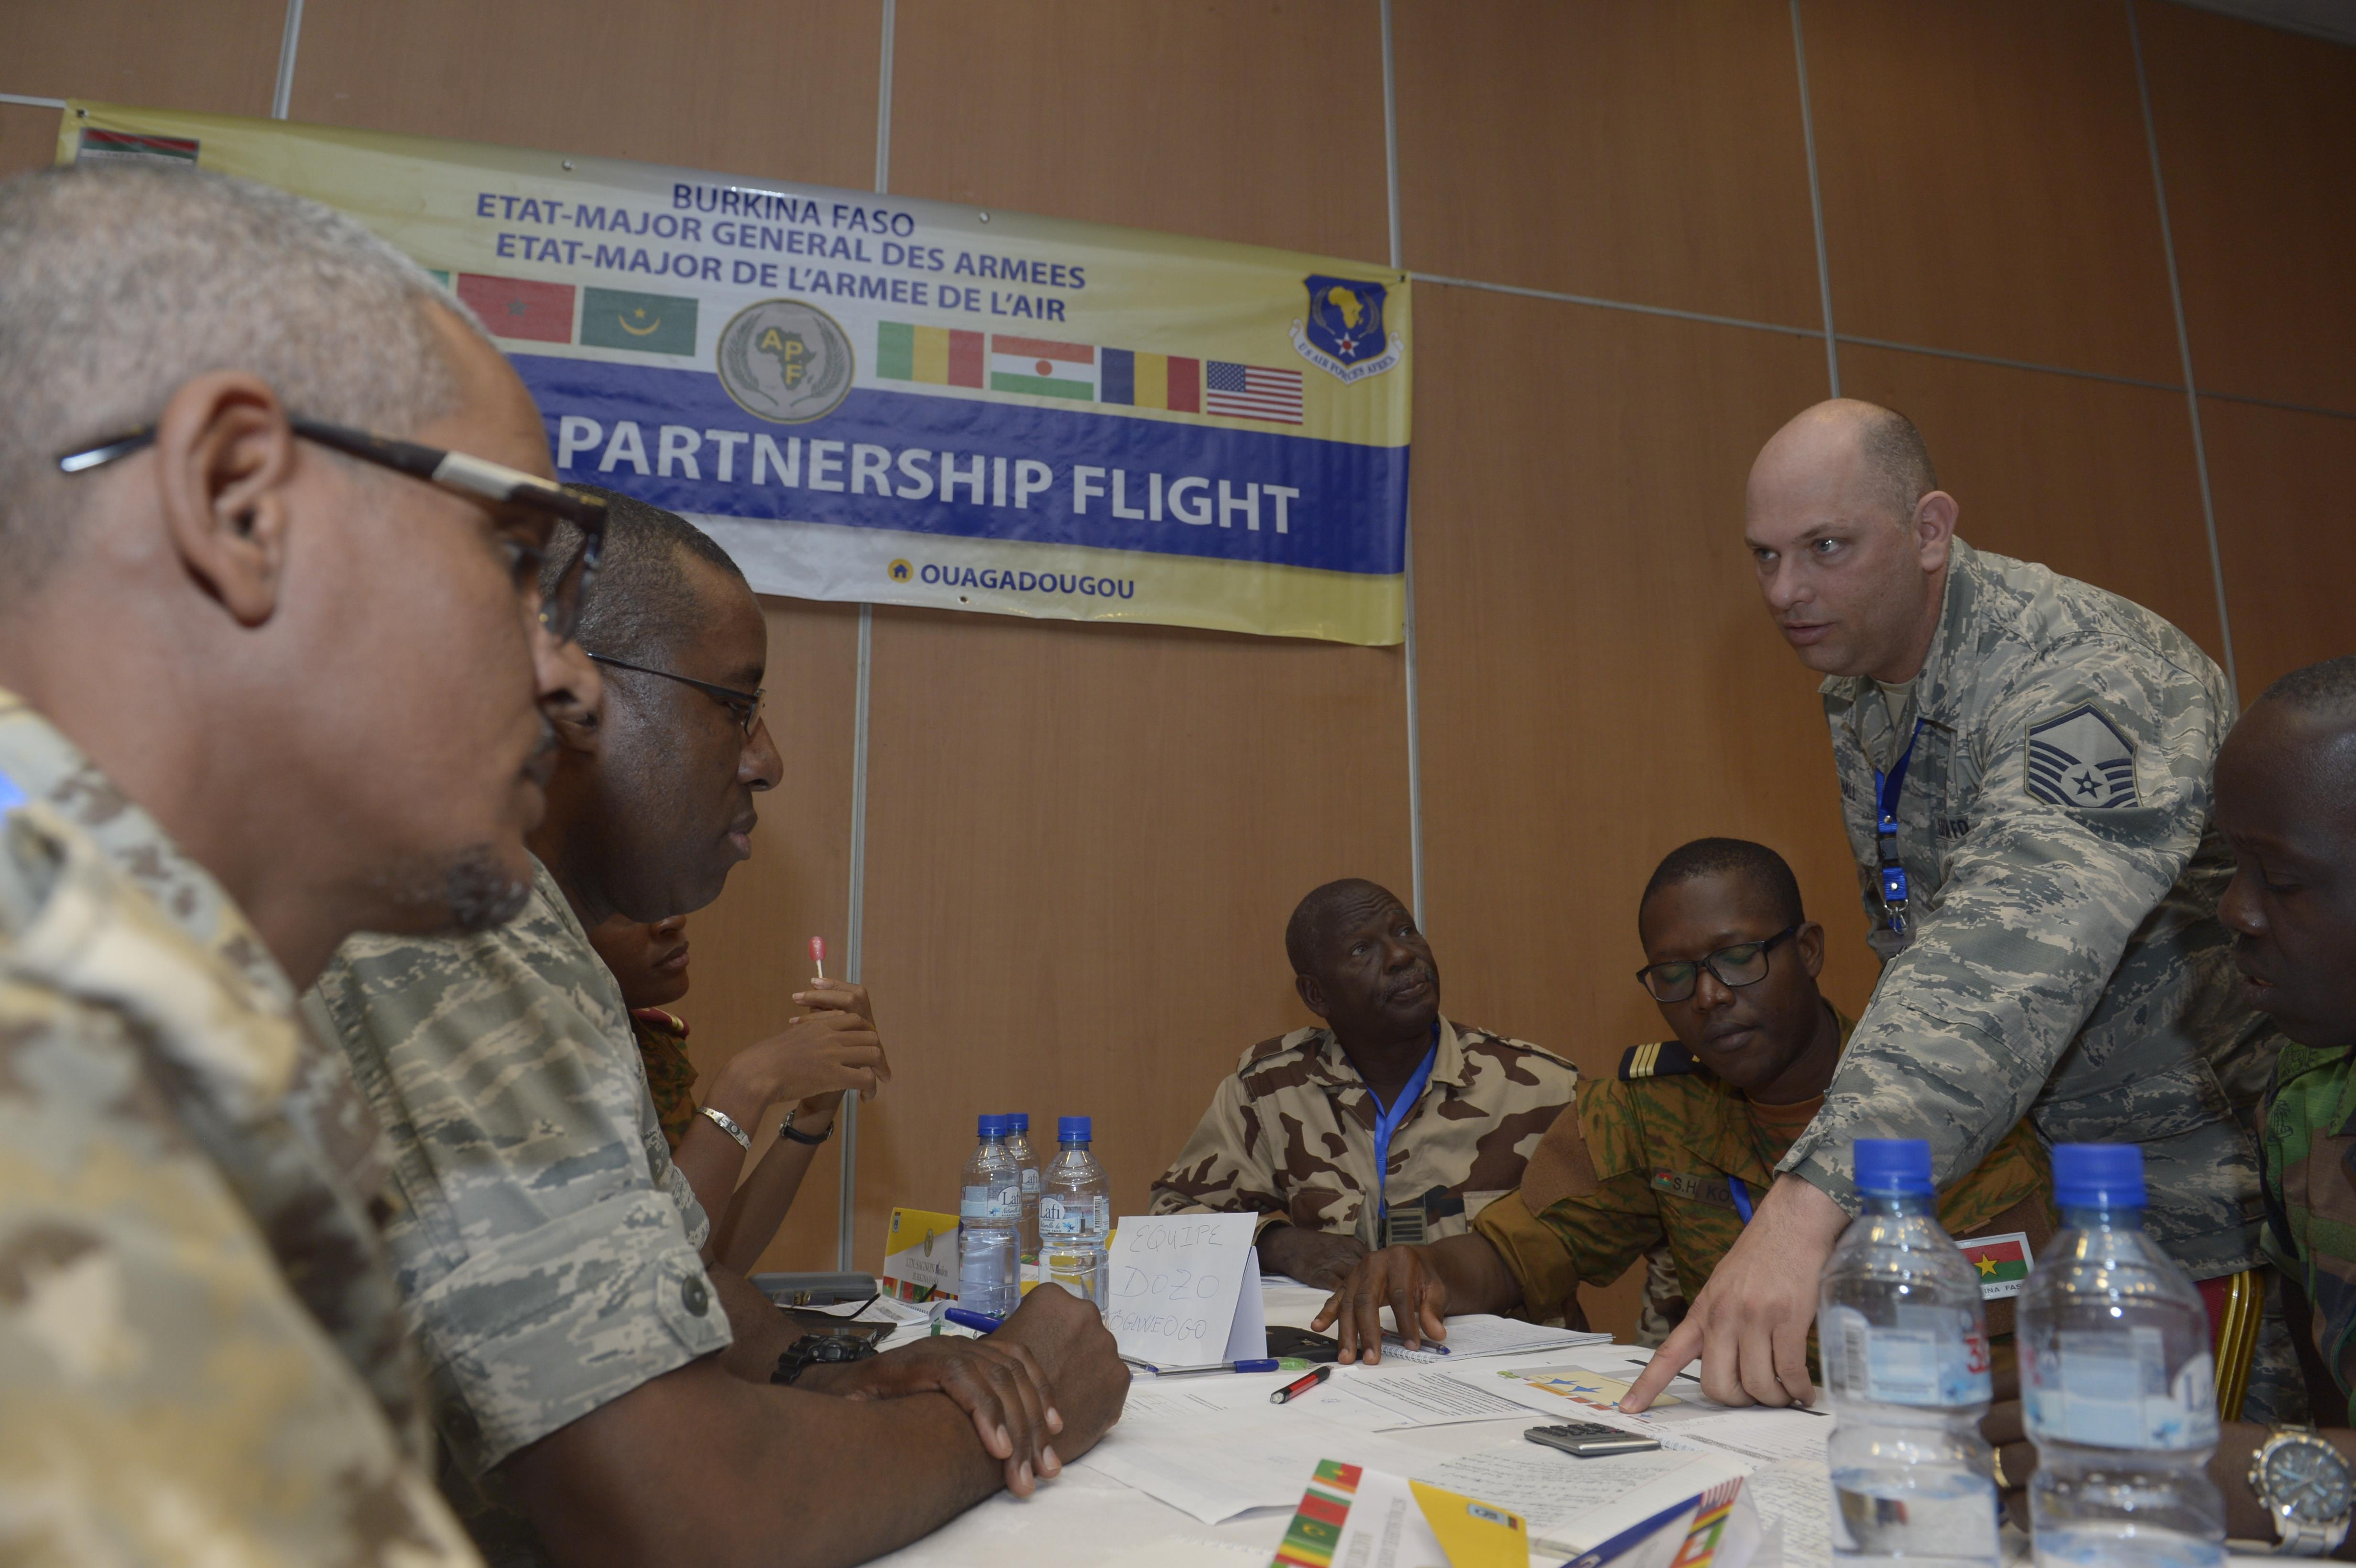 U.S. Air Force Master Sgt. Johnny Hall, right, 818th Mobility Support Advisory Squadron air advisor aircraft maintenance, talks with African Partnership Flight participants during a table top workshop in Ouagadougou, Burkina Faso, April 20, 2017. The intent of APF is to build strong transparent partnerships that enhance regional stability and security through formal alliances, partnerships and simple exchanges of information. (U.S. Air Force photo by Staff Sgt. Jonathan Snyder)